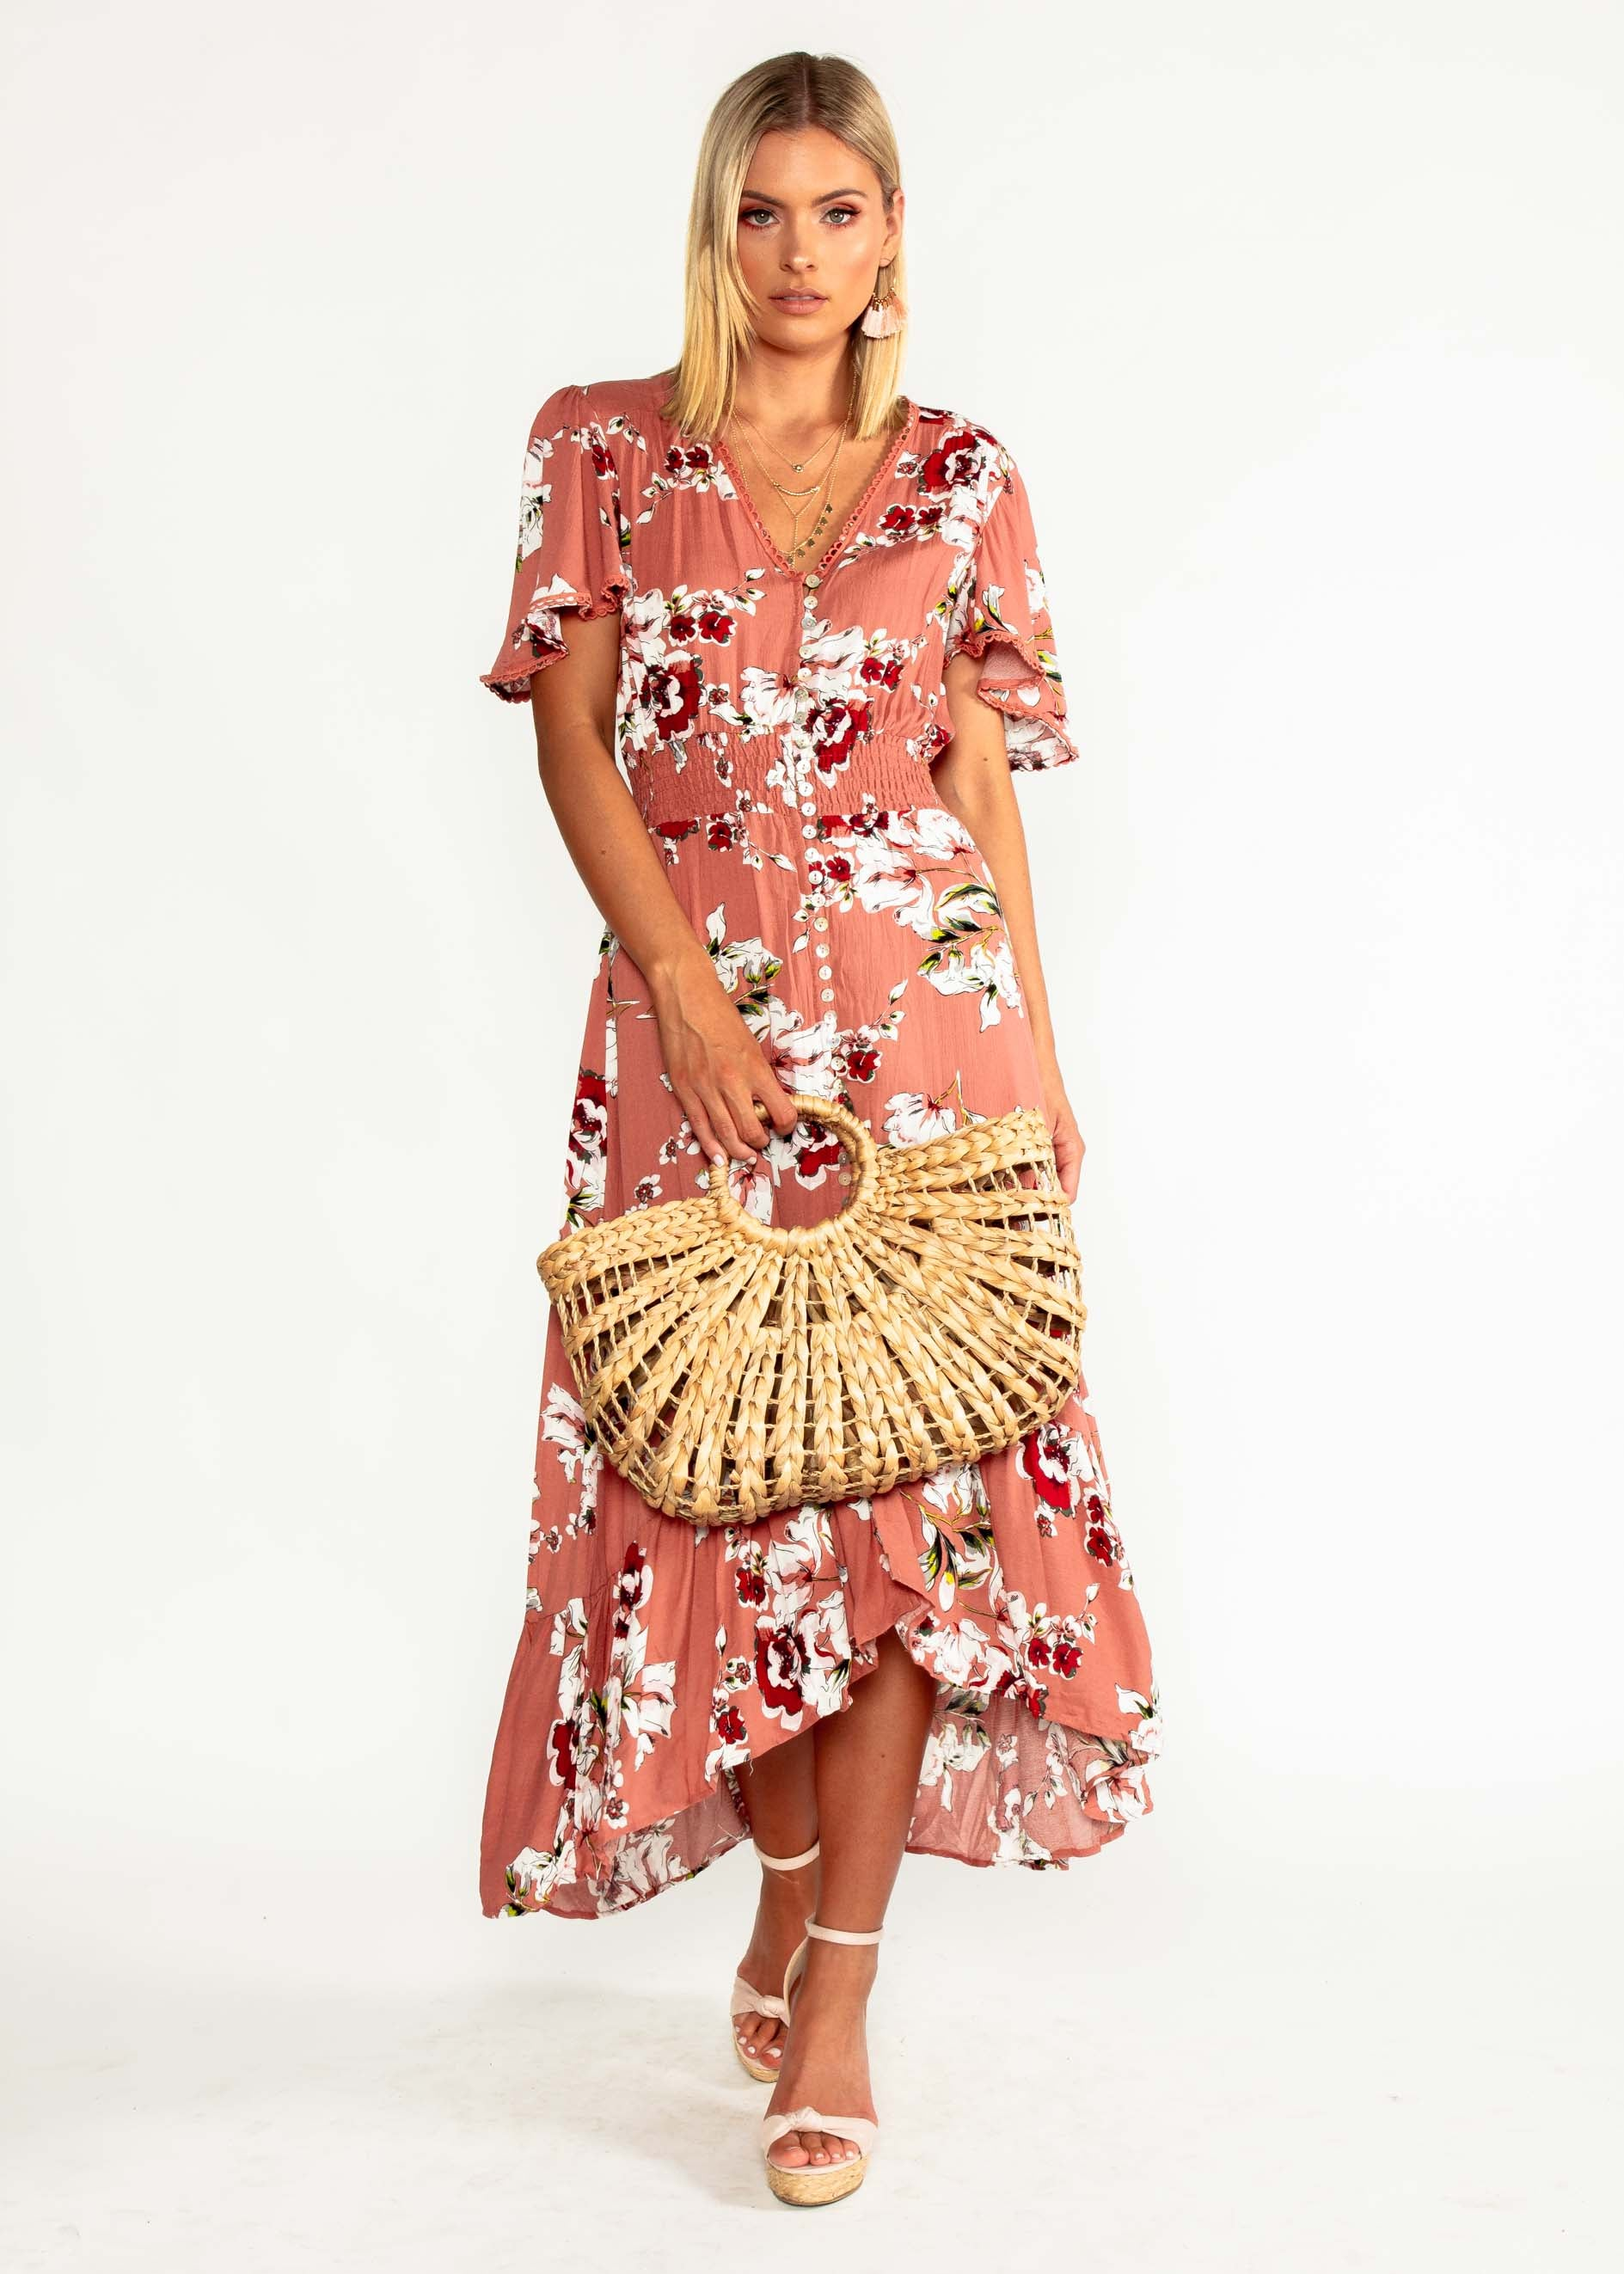 Leaving California Midi Dress - Rose Floral